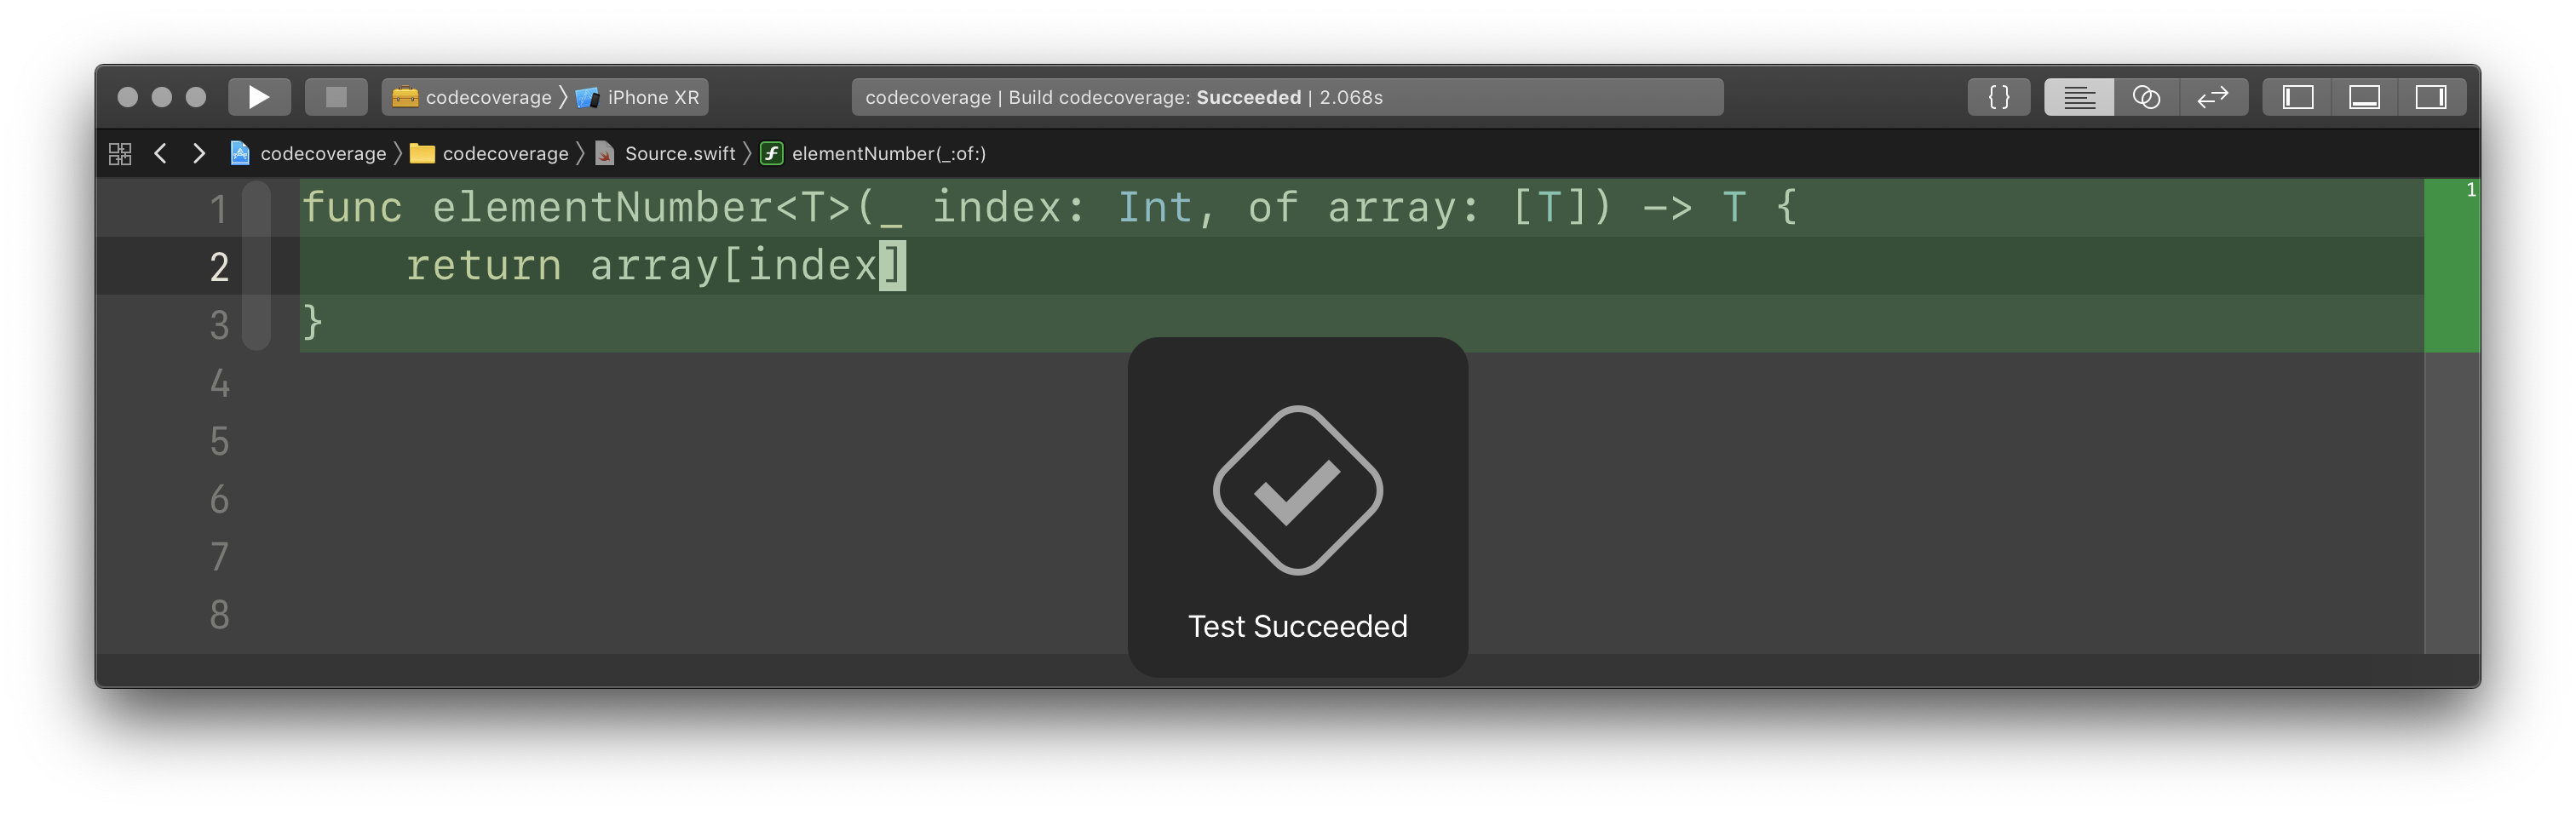 screenshot of Xcode showing 100% code coverage on a bugged function